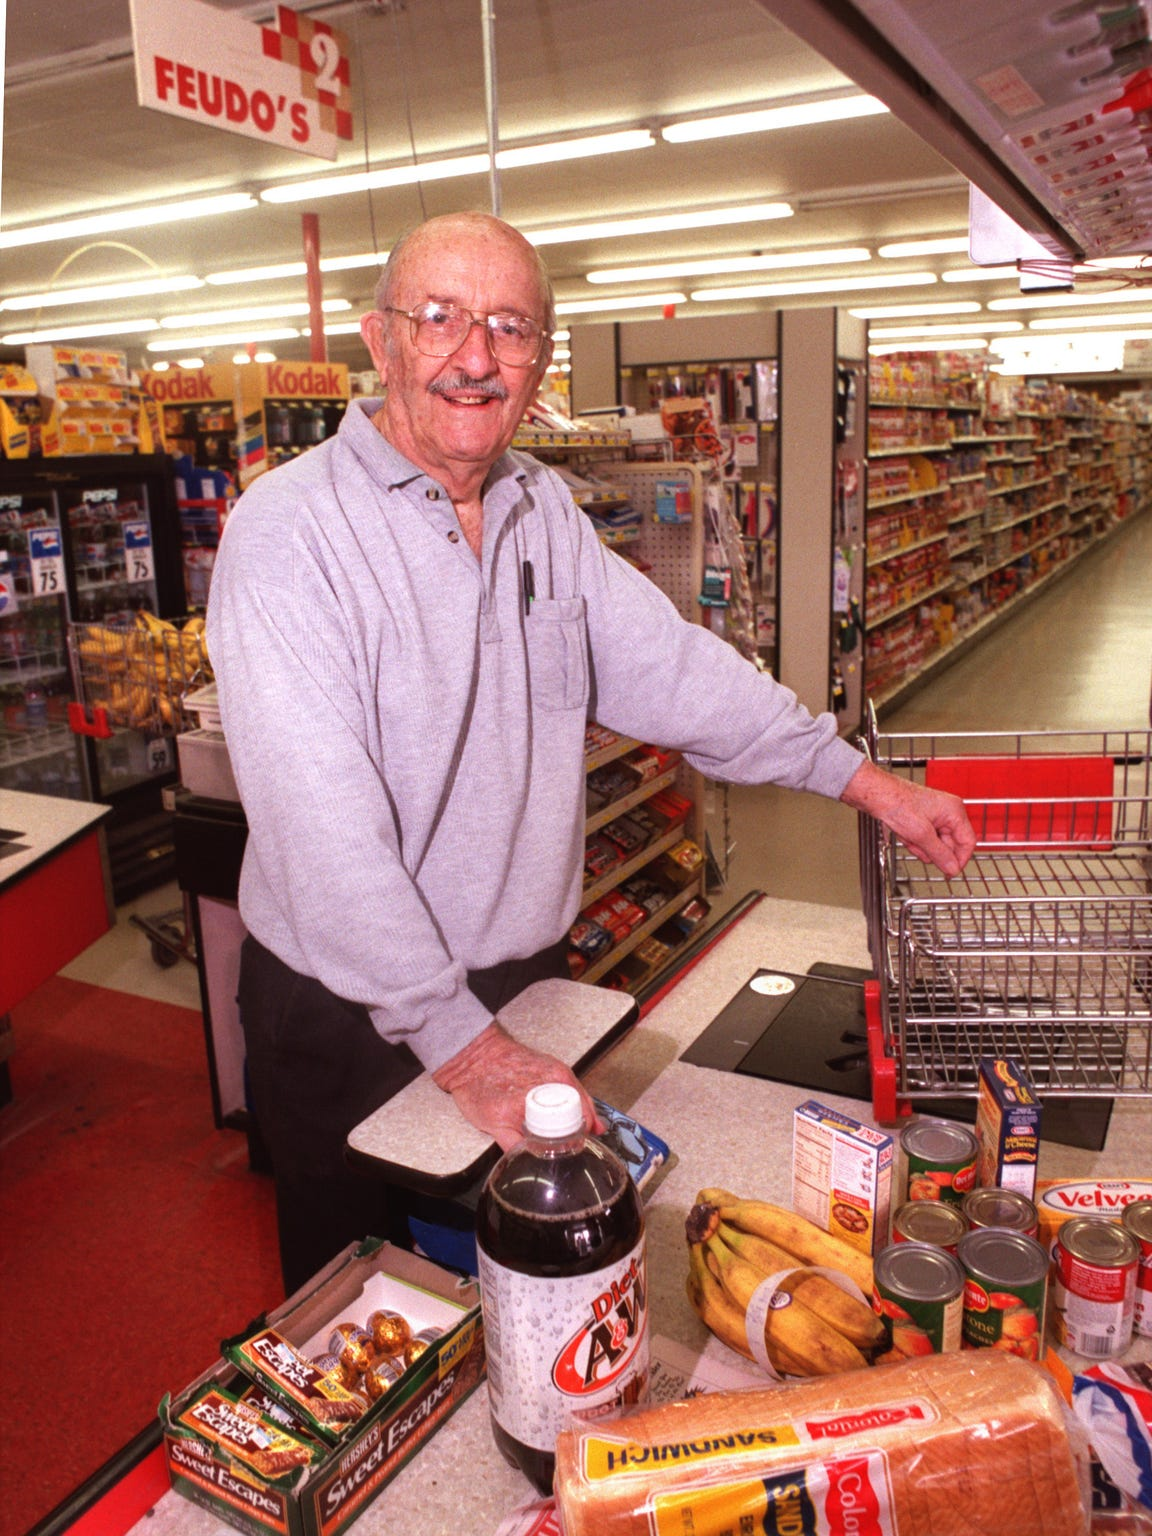 Joe Feudo, original owner of the Feudo's Food stores, buys groceries Feb. 25, 1999. The current owners were closing the store later that year.